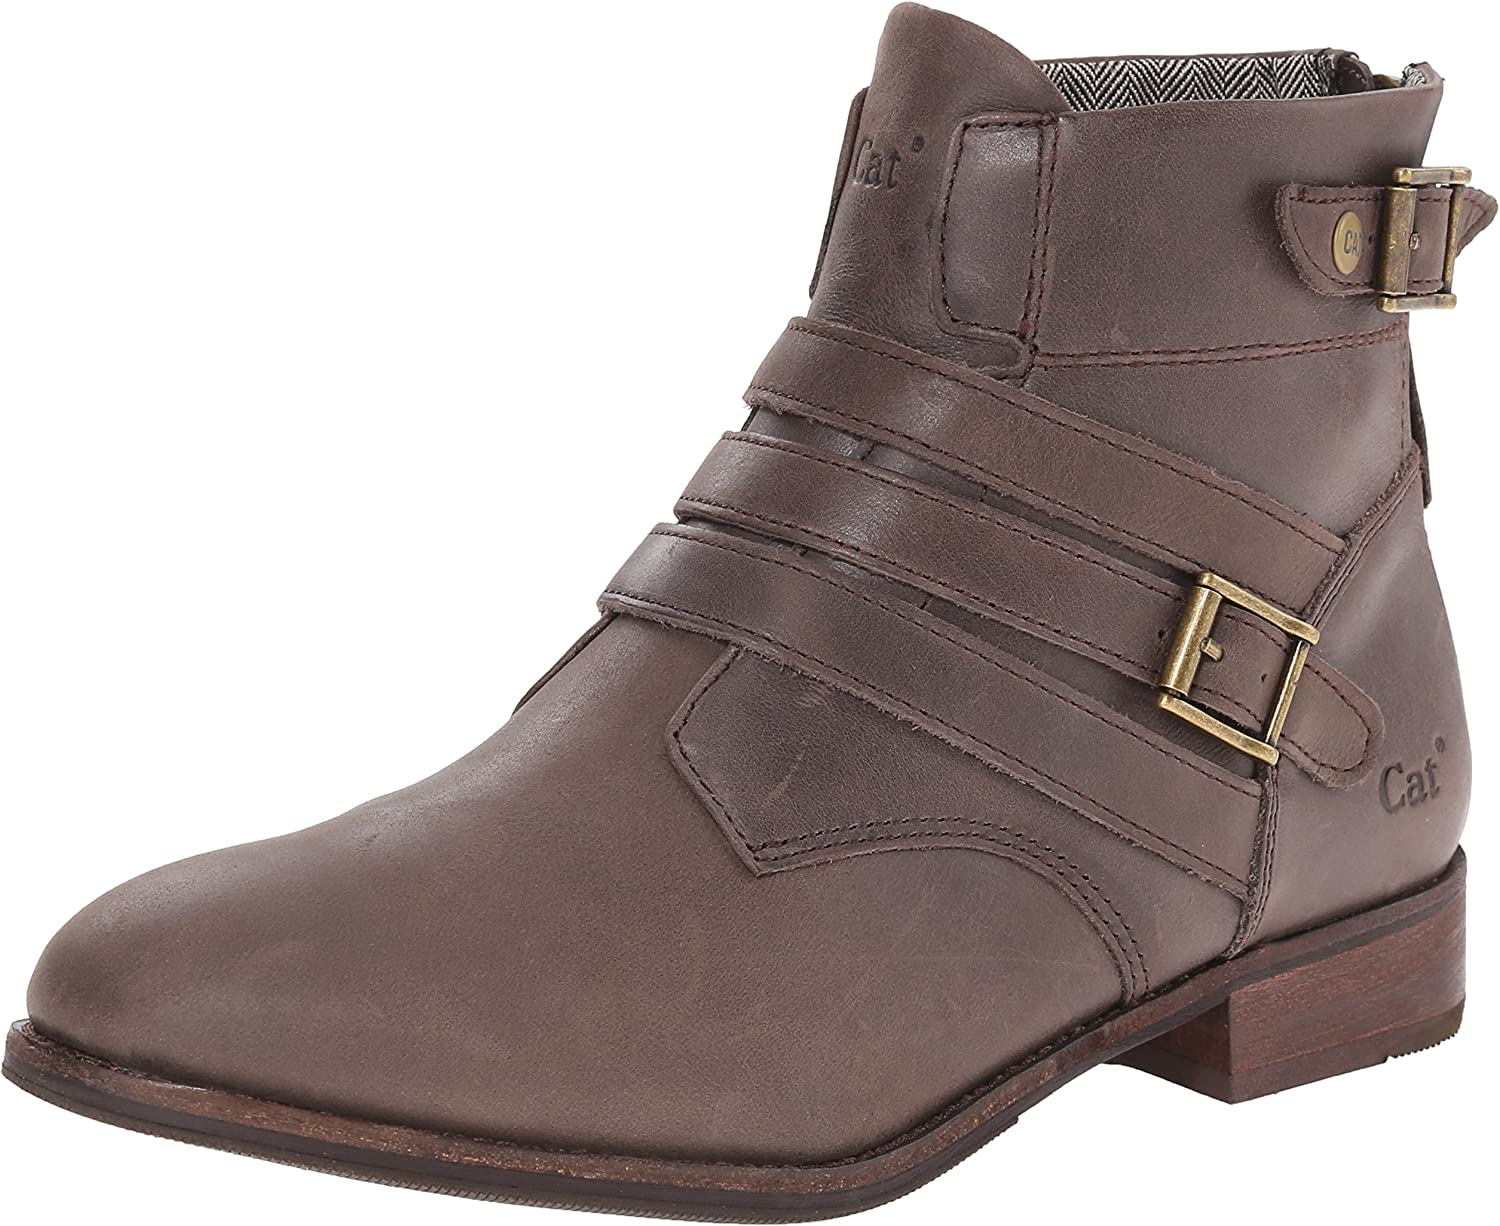 CAT Footwear Caterpillar Women's Vivienne Boot